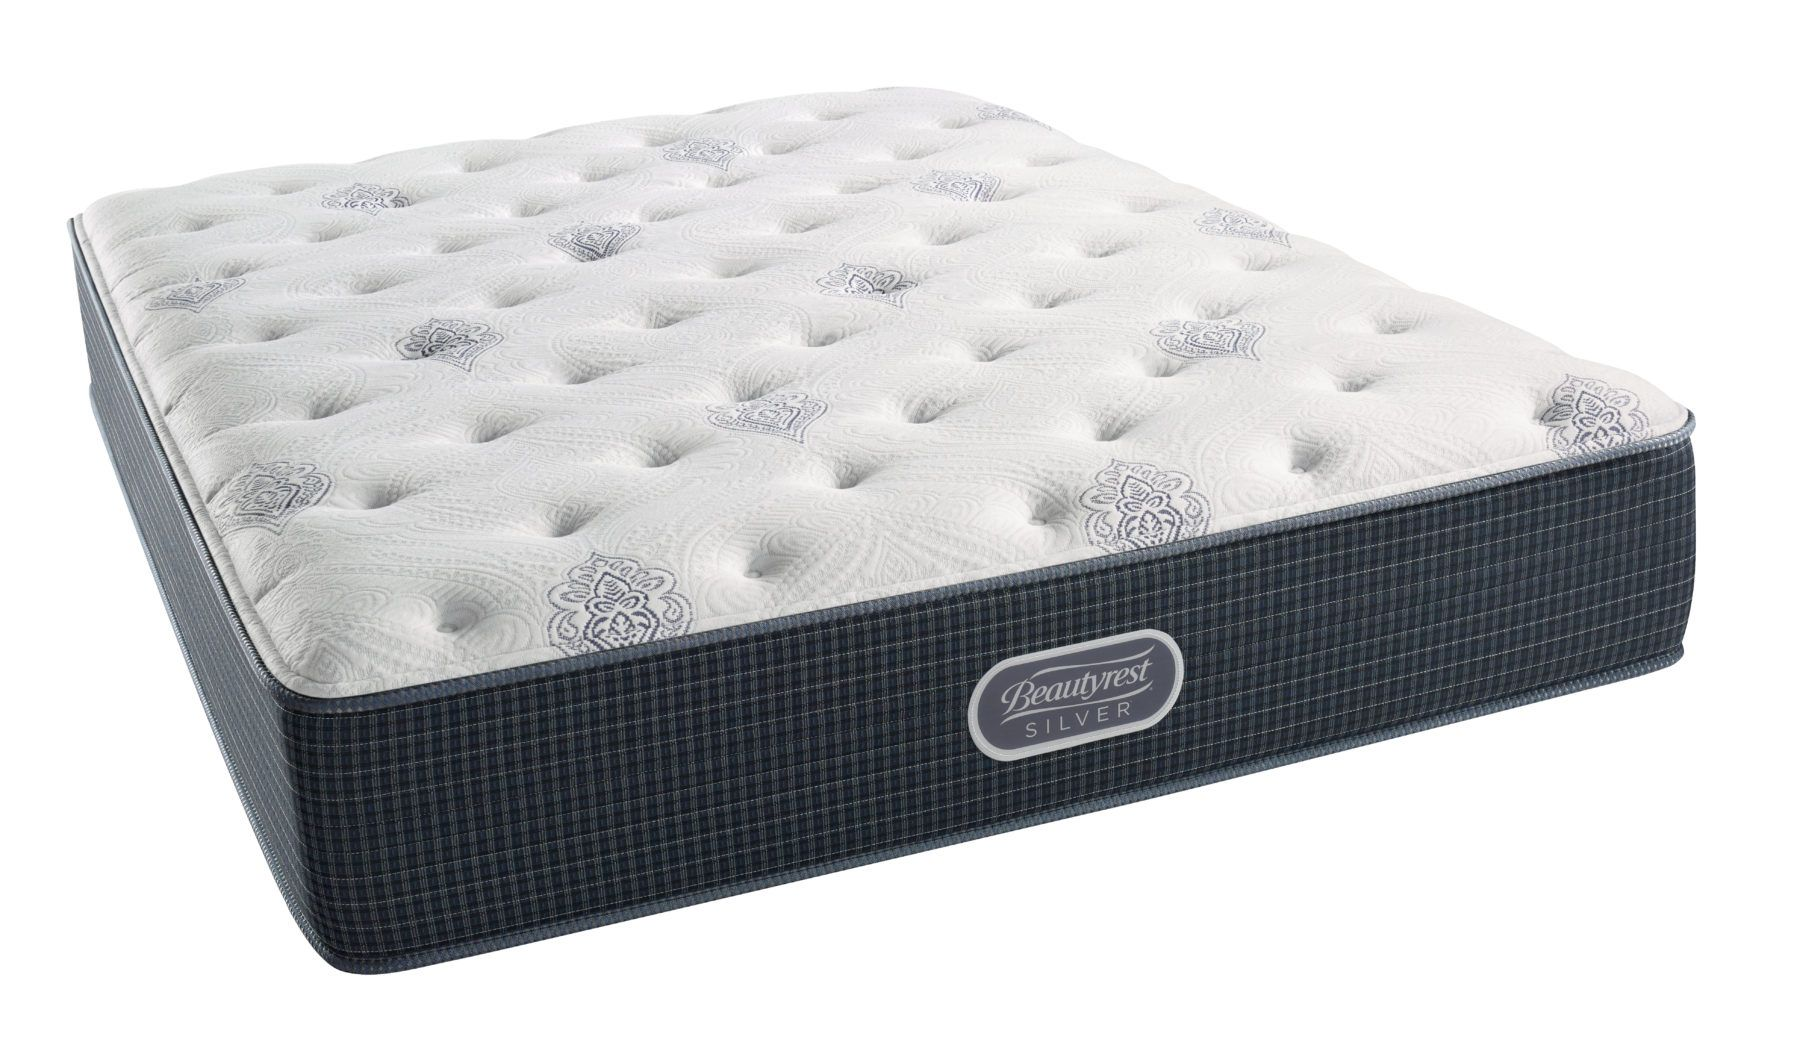 Beautyrest Silver Middleton Cay Plush Mattress Dualcool